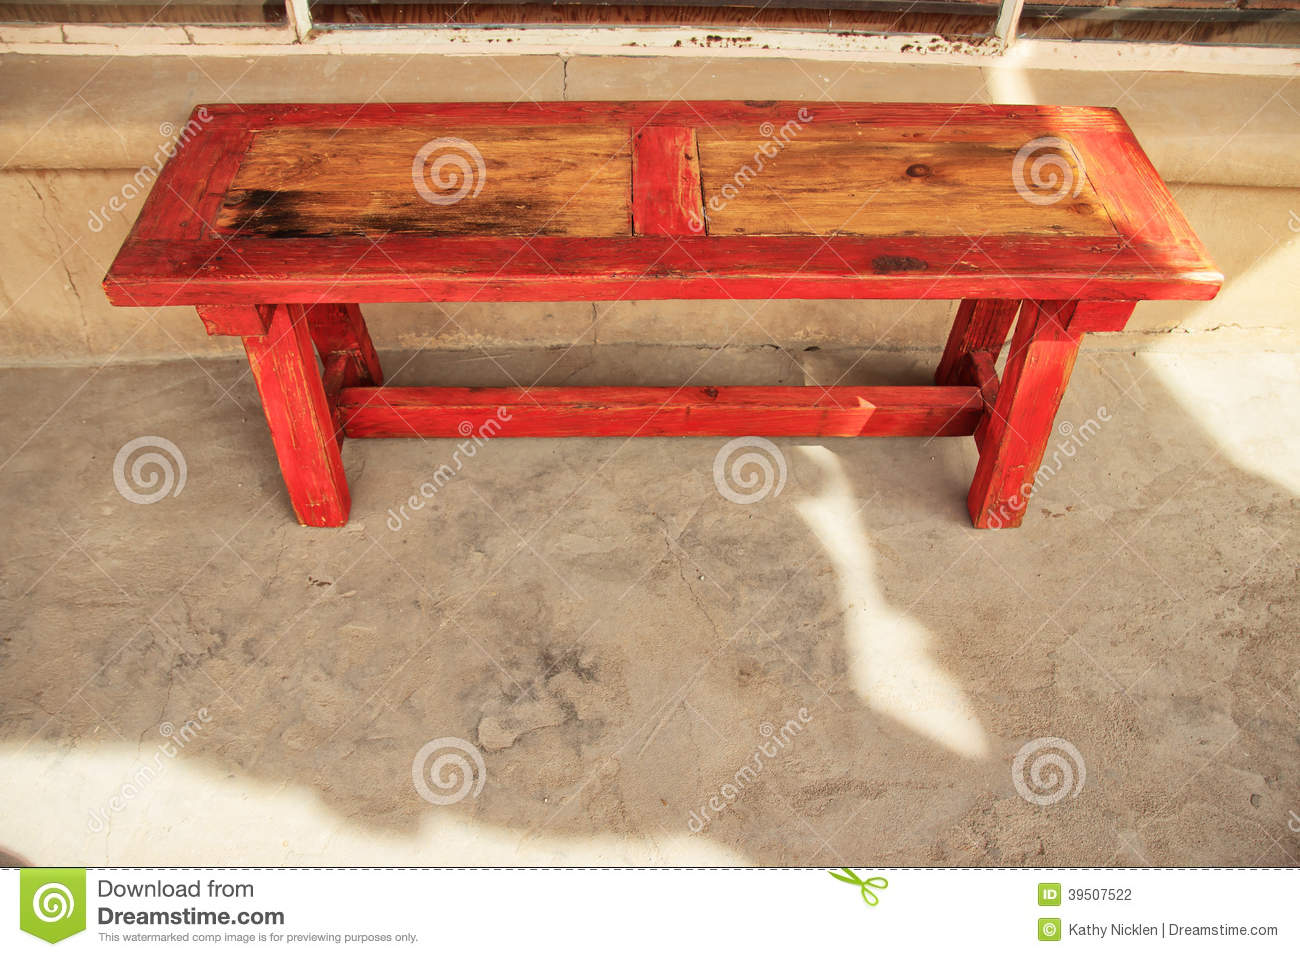 Red trimmed wood bench